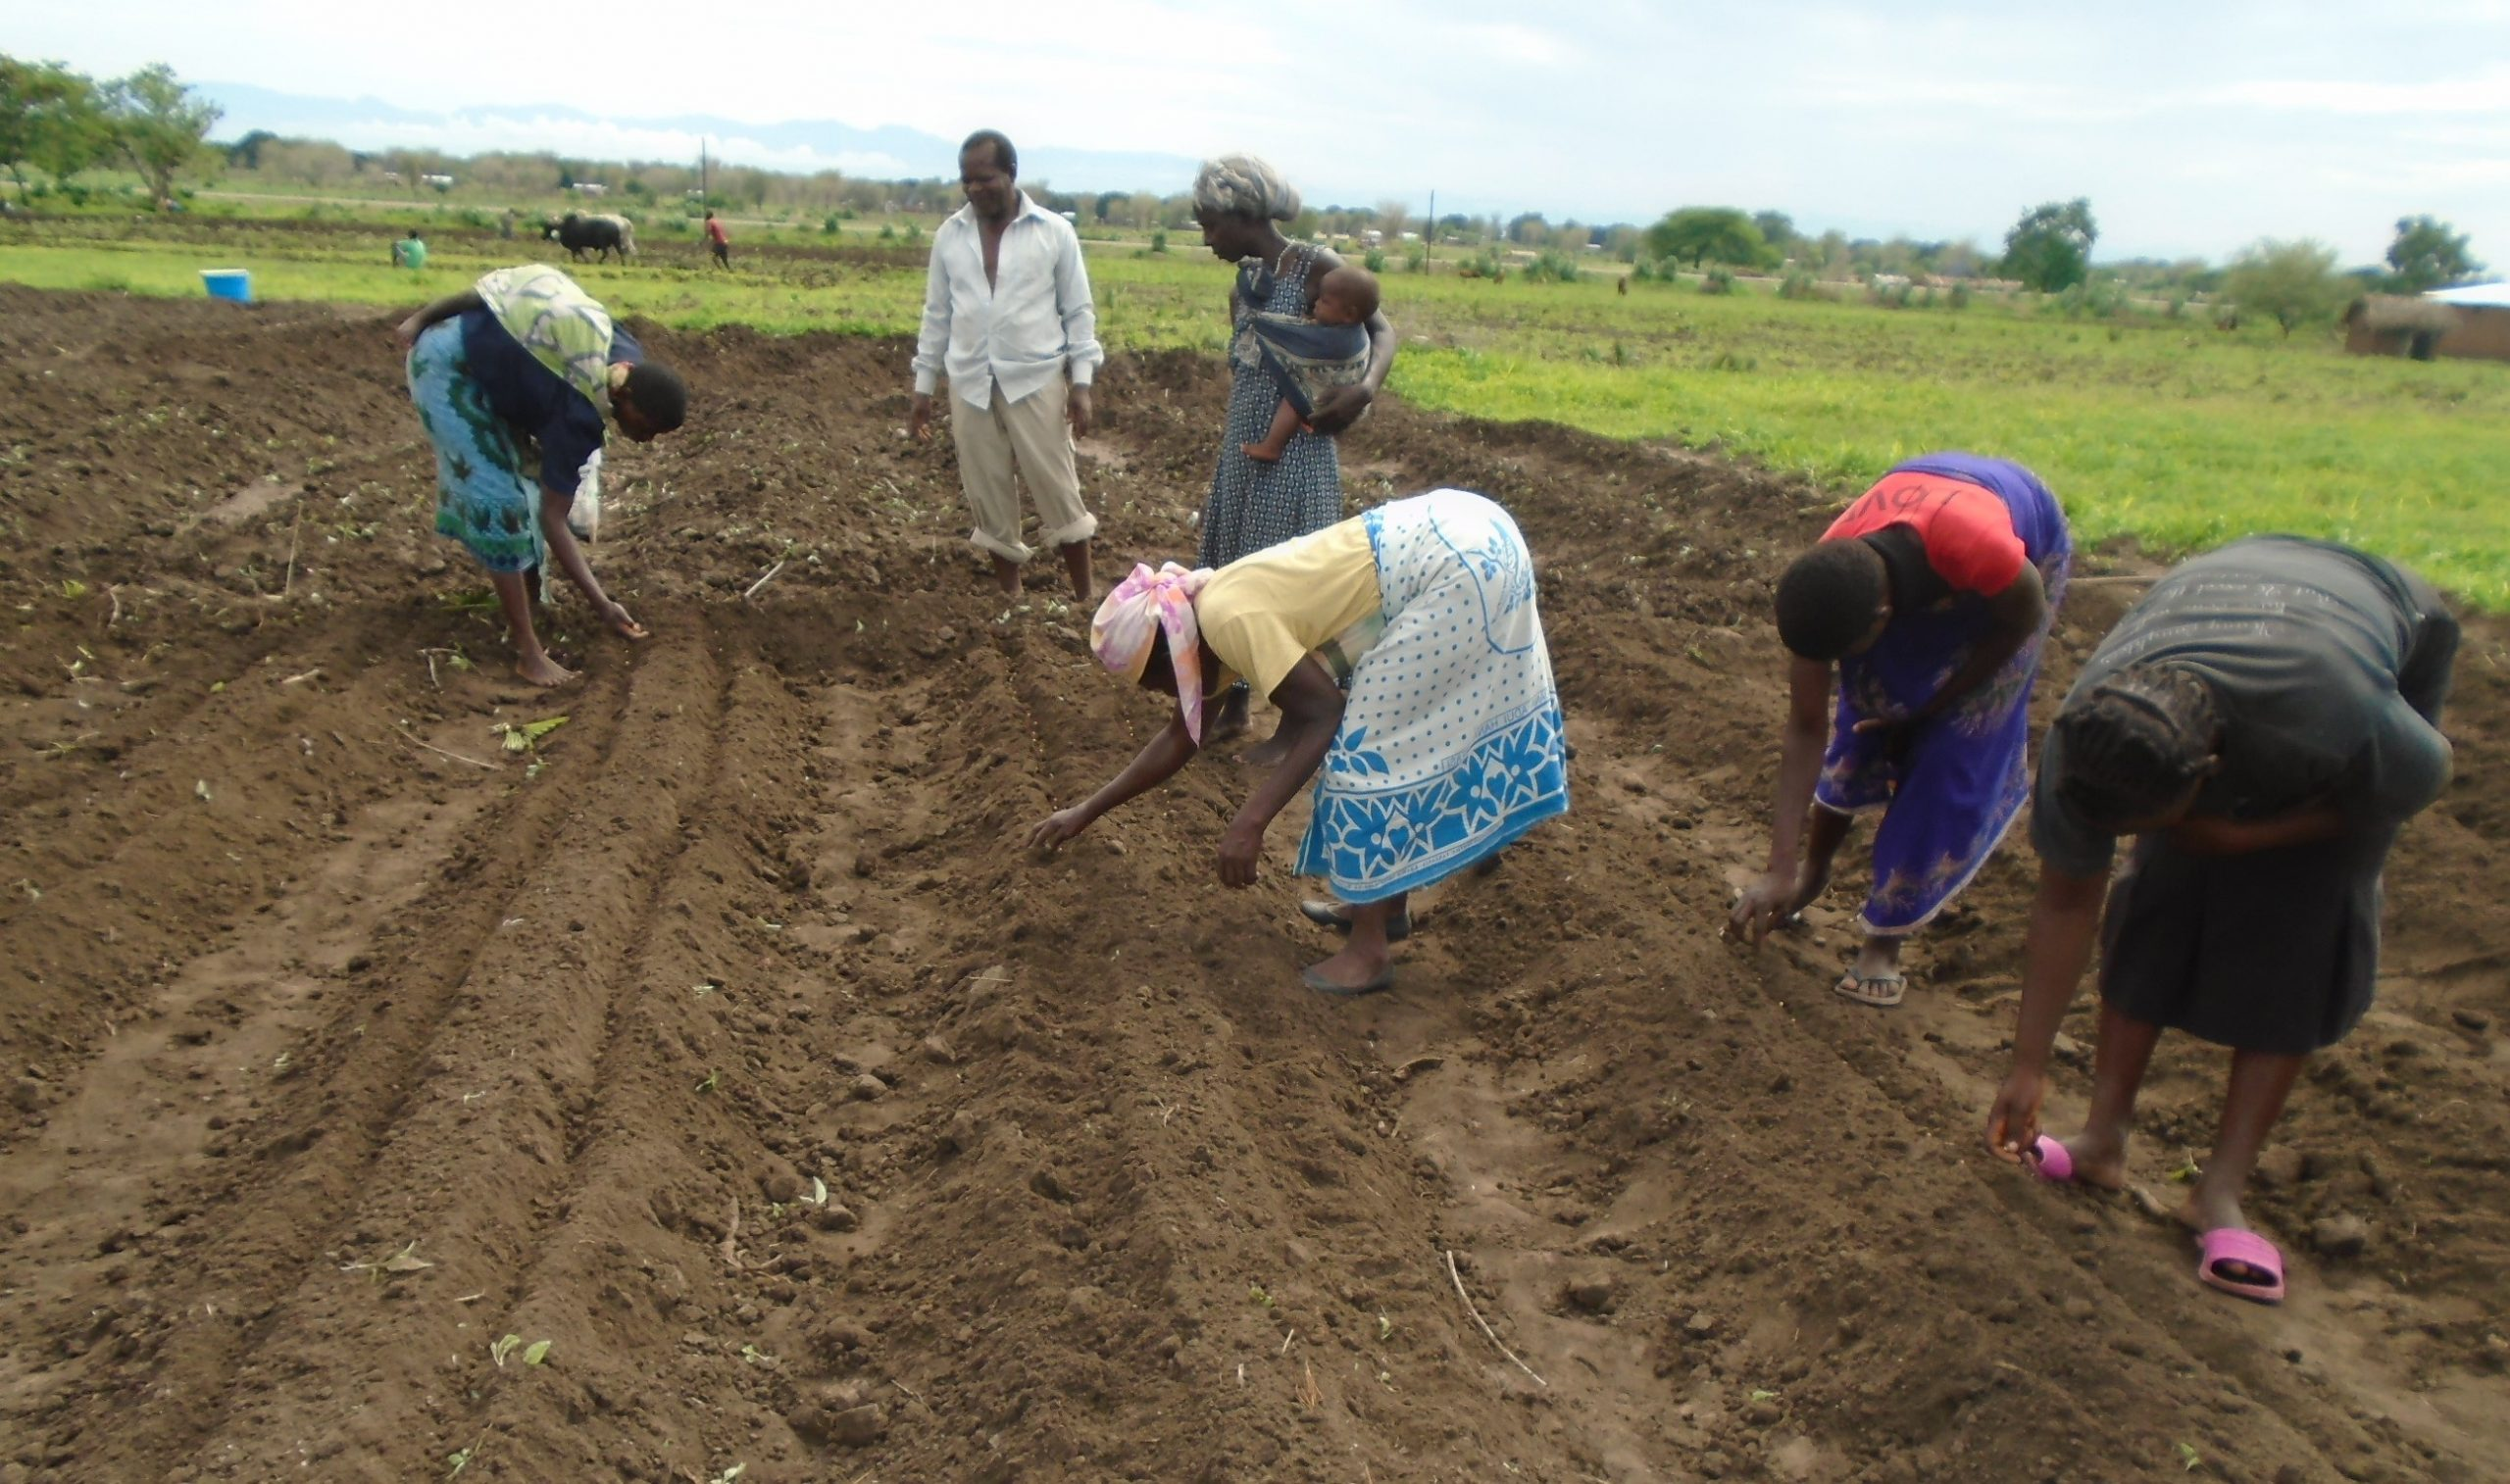 Development Desk Using Demonstration Plots to Scale up Adoption of Climate Smart Agricultural Technologies